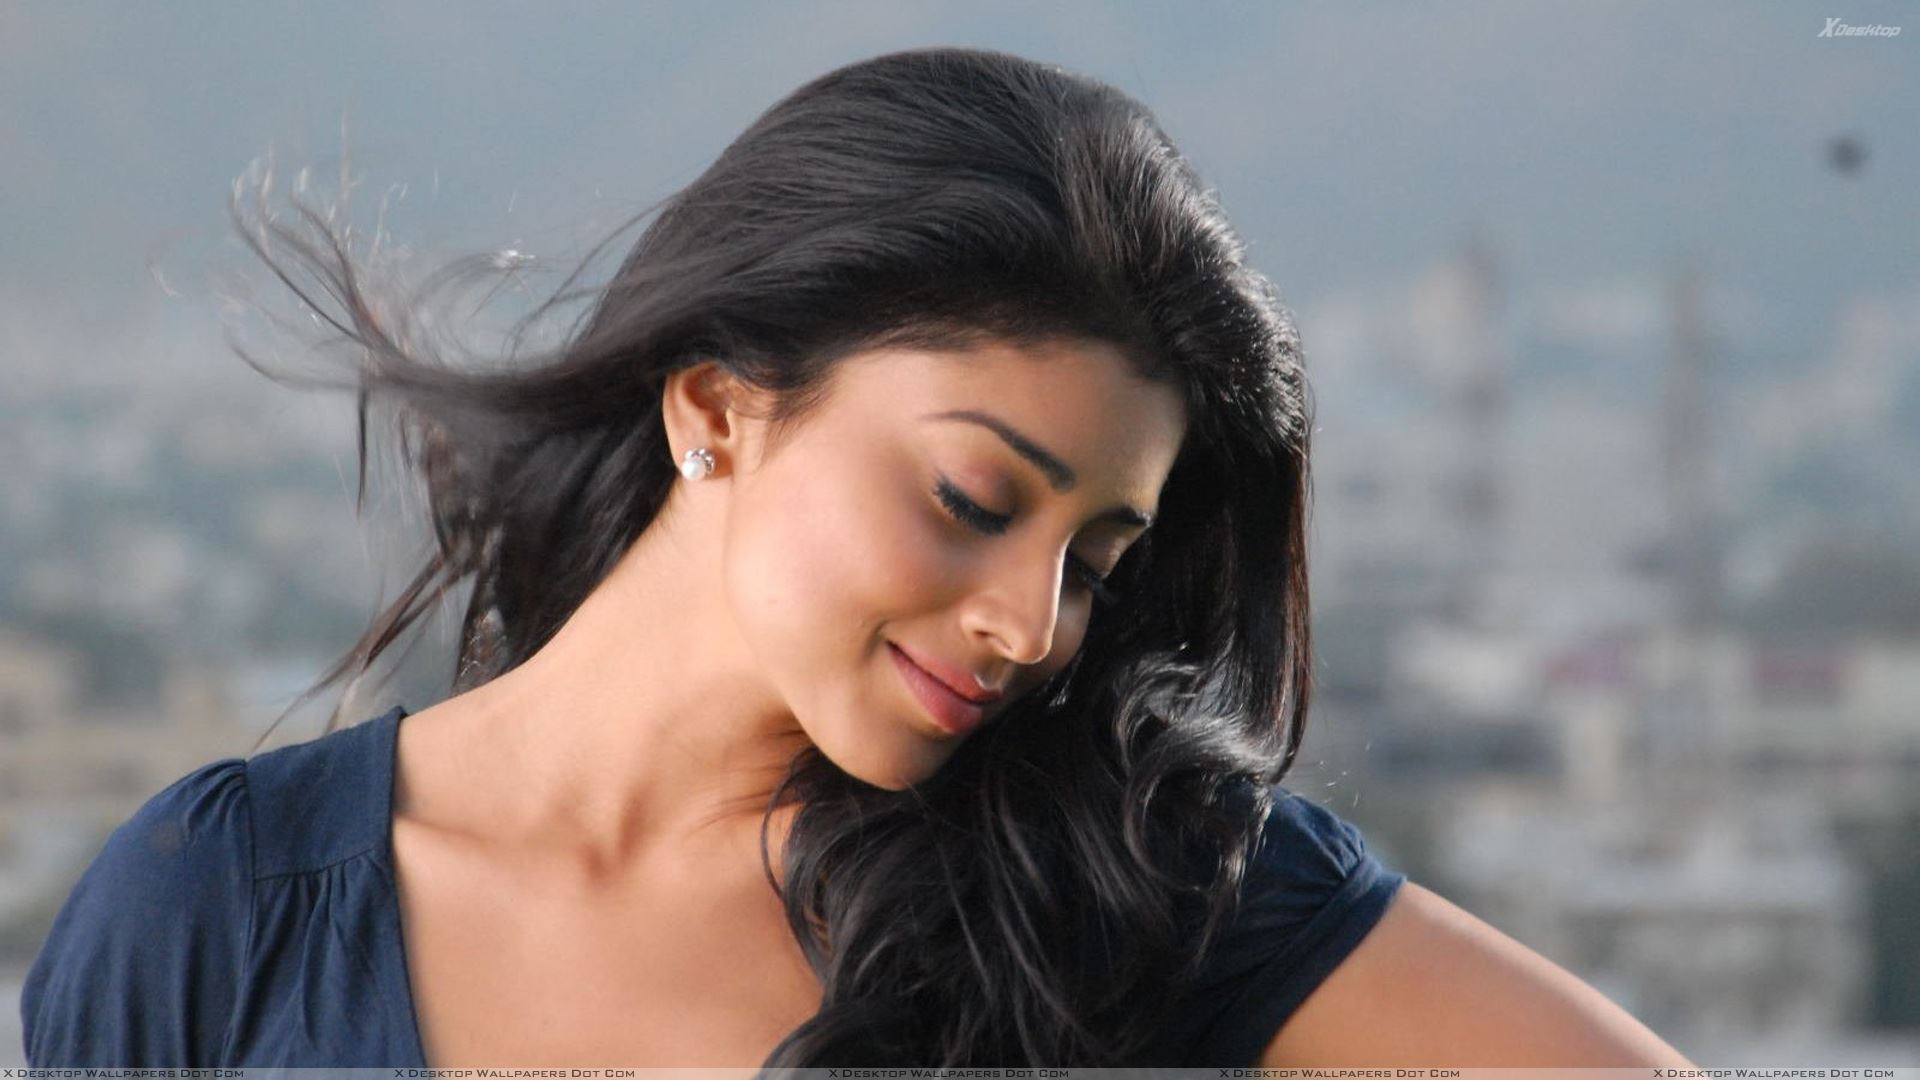 shriya saran wallpapers, photos & images in hd